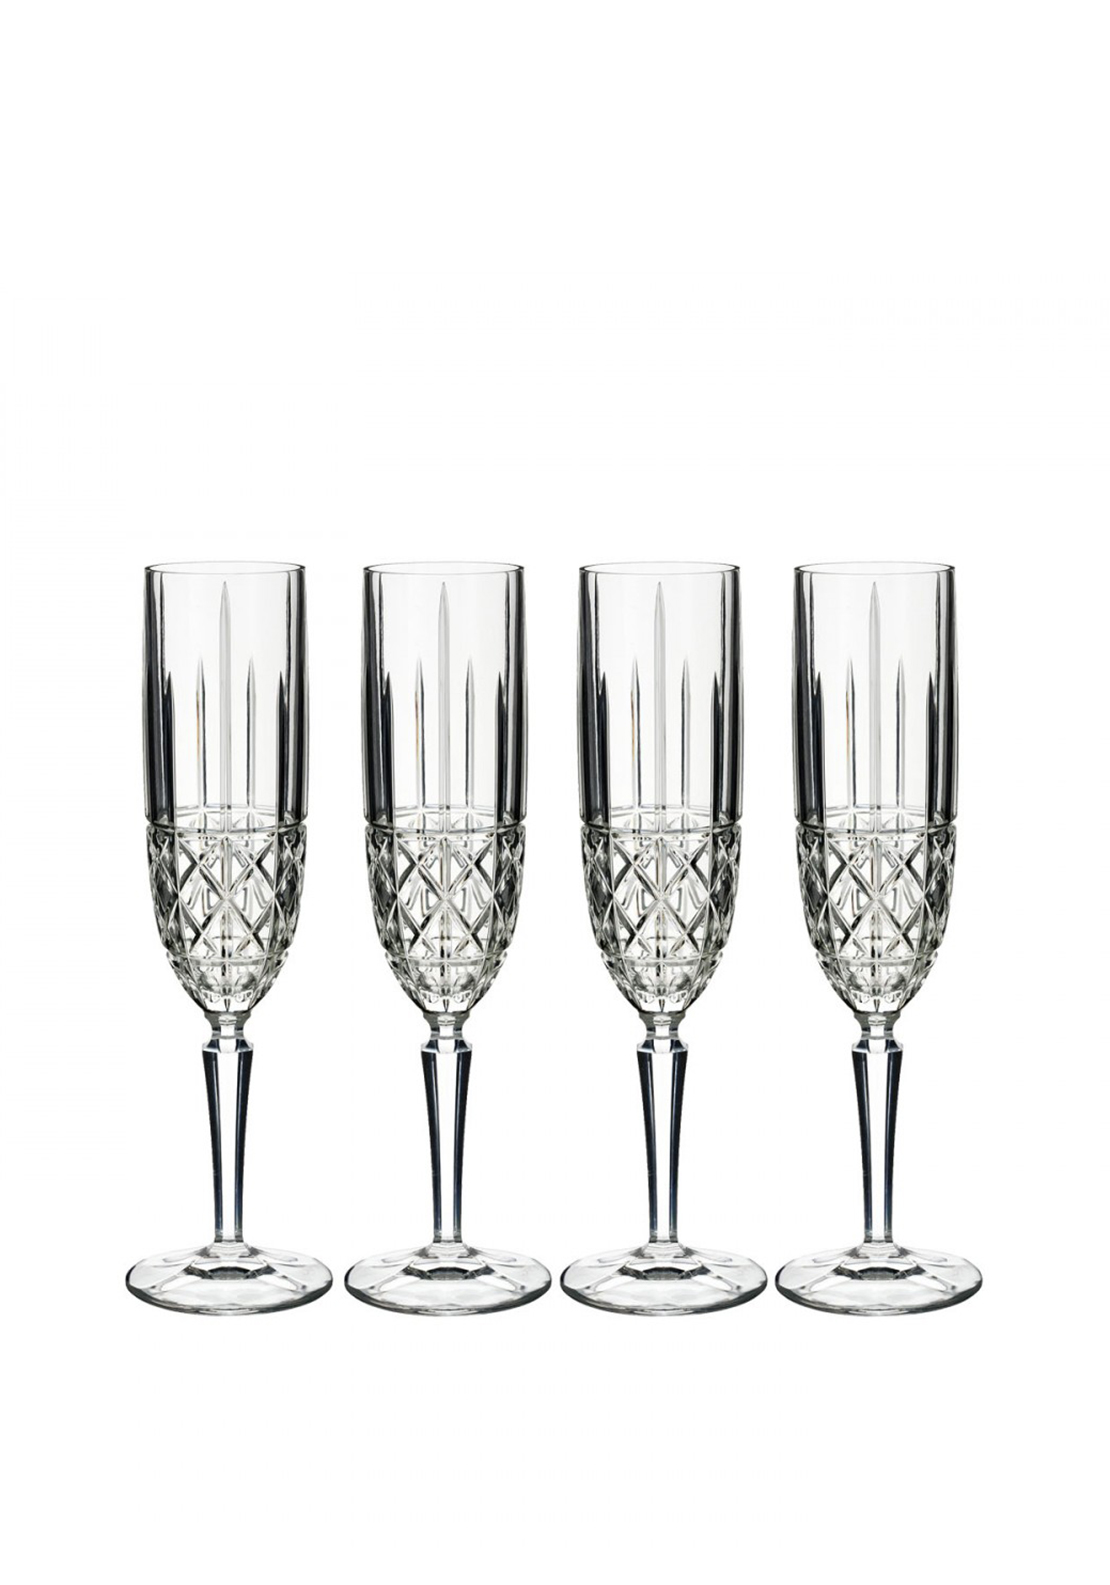 Marquis by Waterford Crystal Brady Flutes, Set of 4